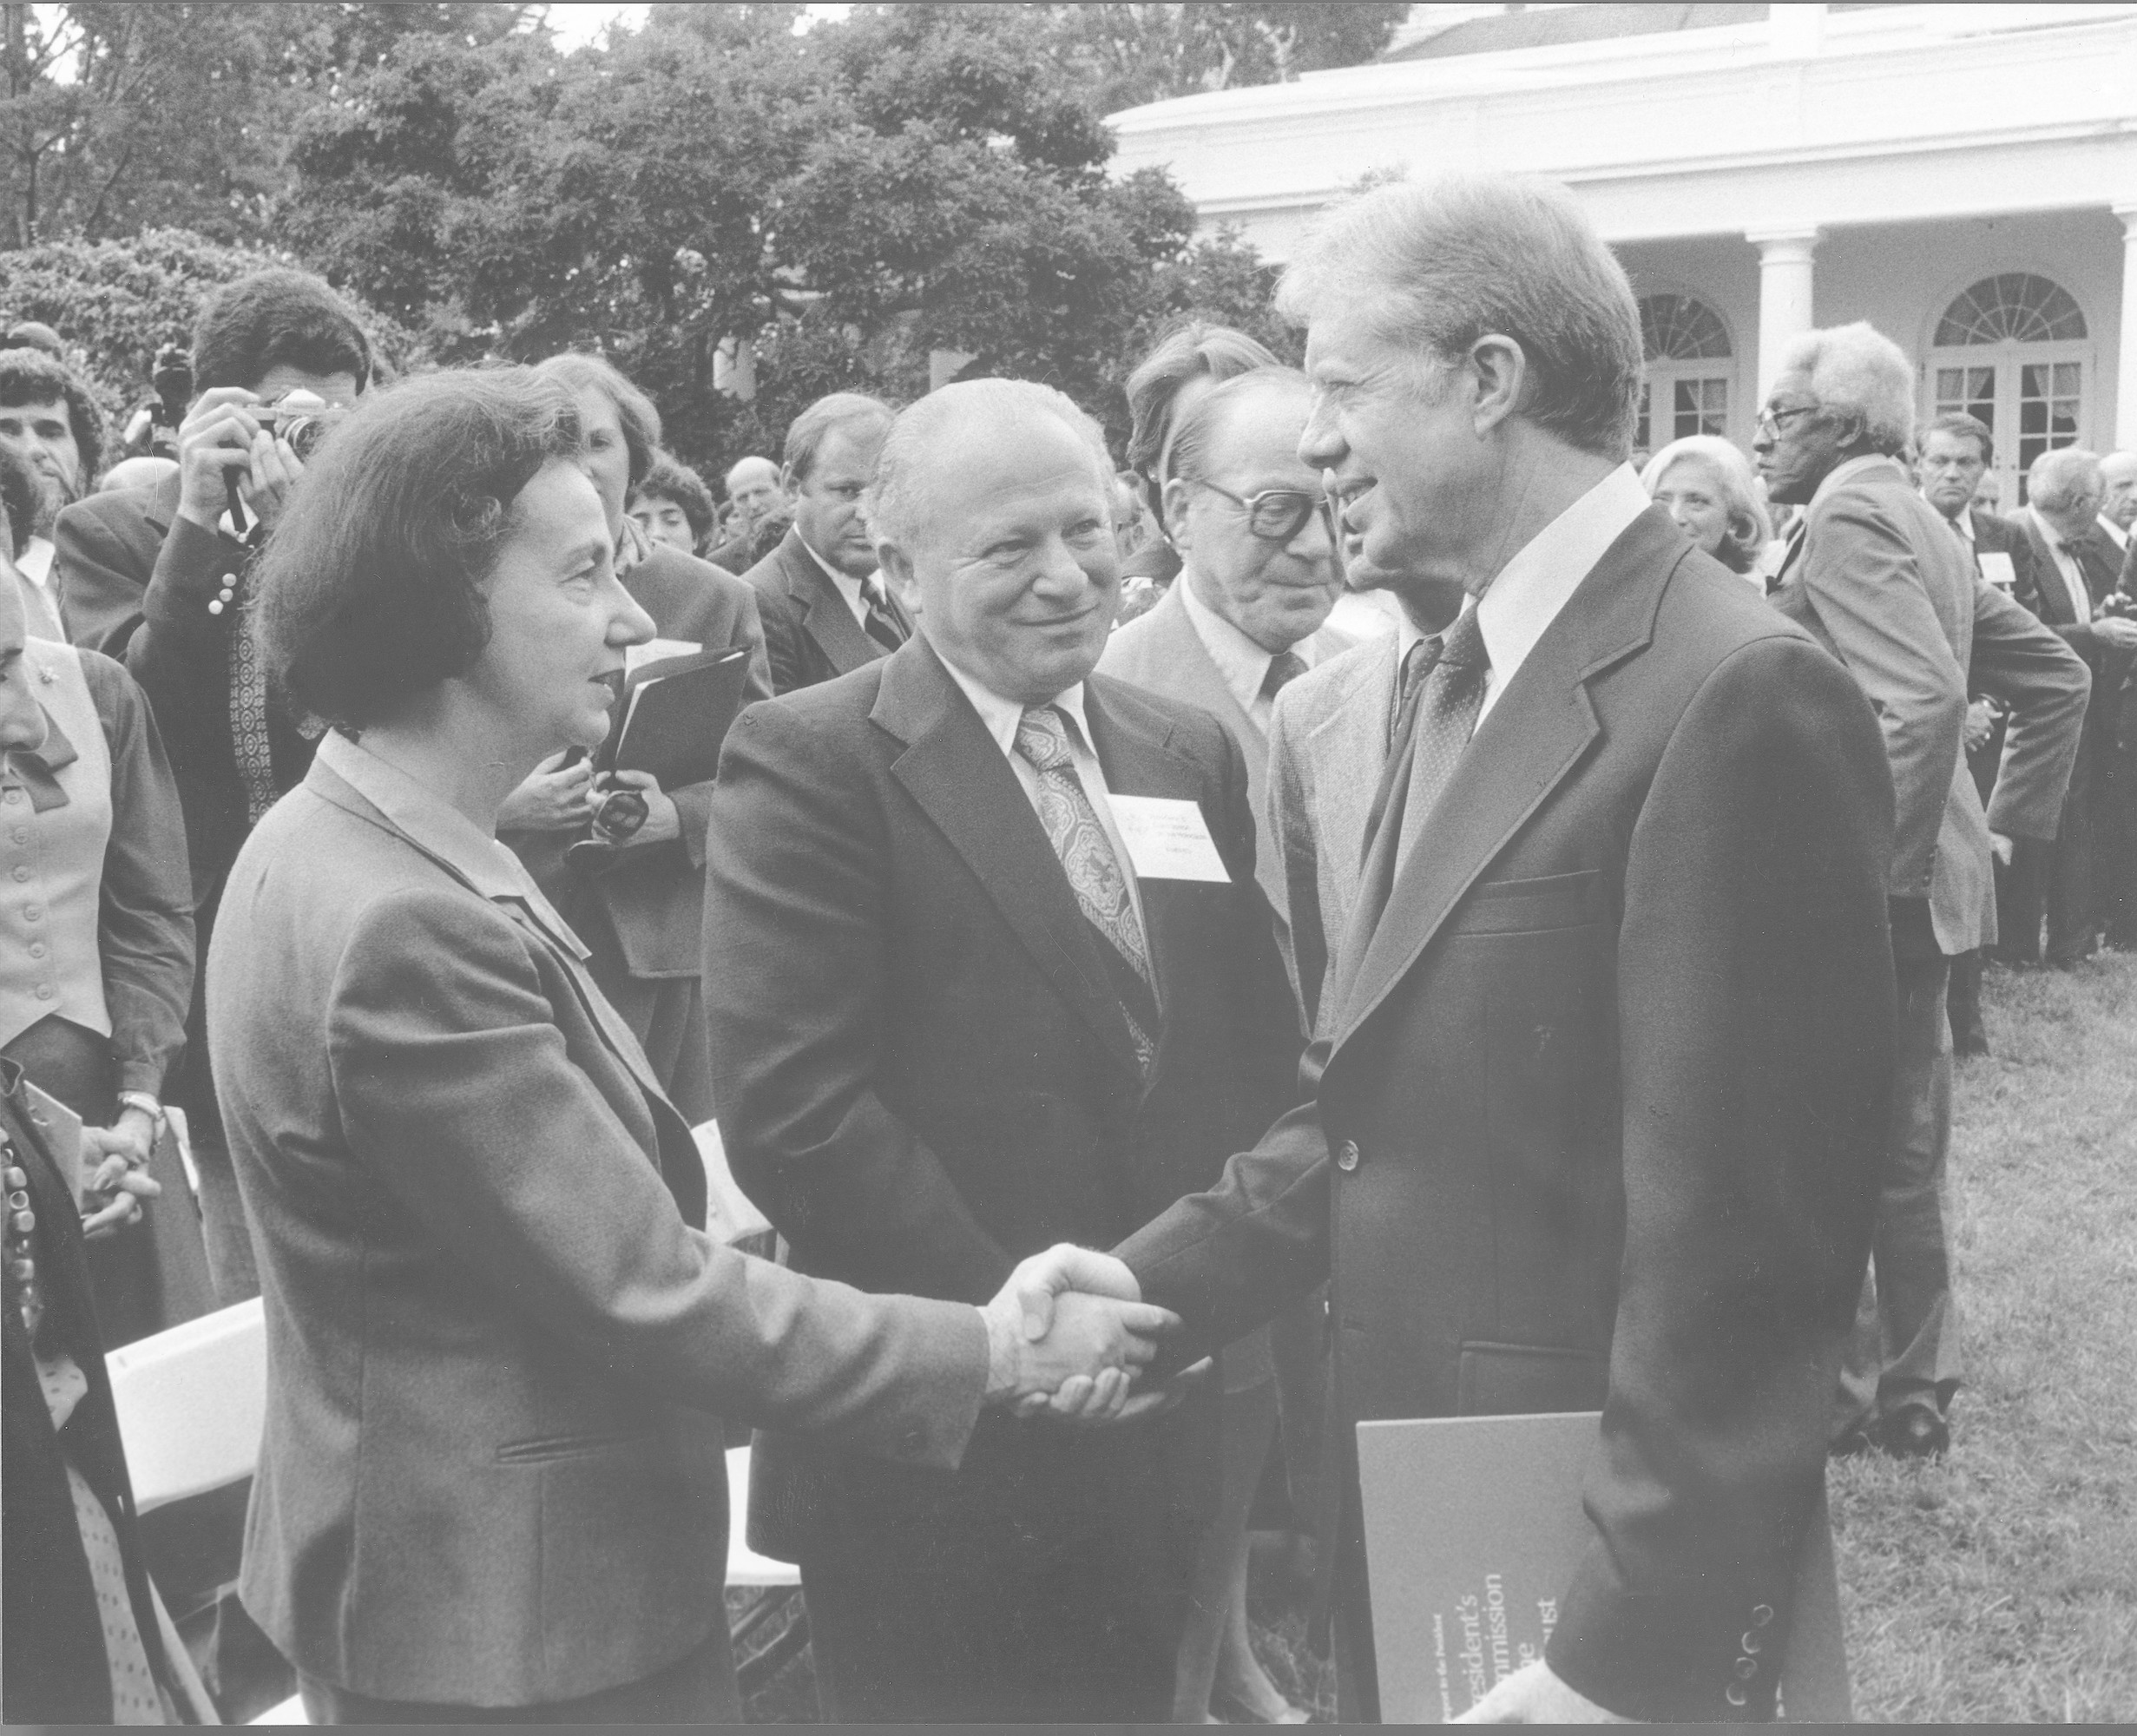 President Jimmy Carter shakes the hand of Vladka Meed during a ceremony in the White House rose garden occasioned by the formal presentation to the president of the report of the U.S. Holocaust Commission.  The report was presented by Elie Wiesel.  Pictured in the foreground from left to right are: Vladka Meed, Benjamin Meed and President Jimmy Carter.